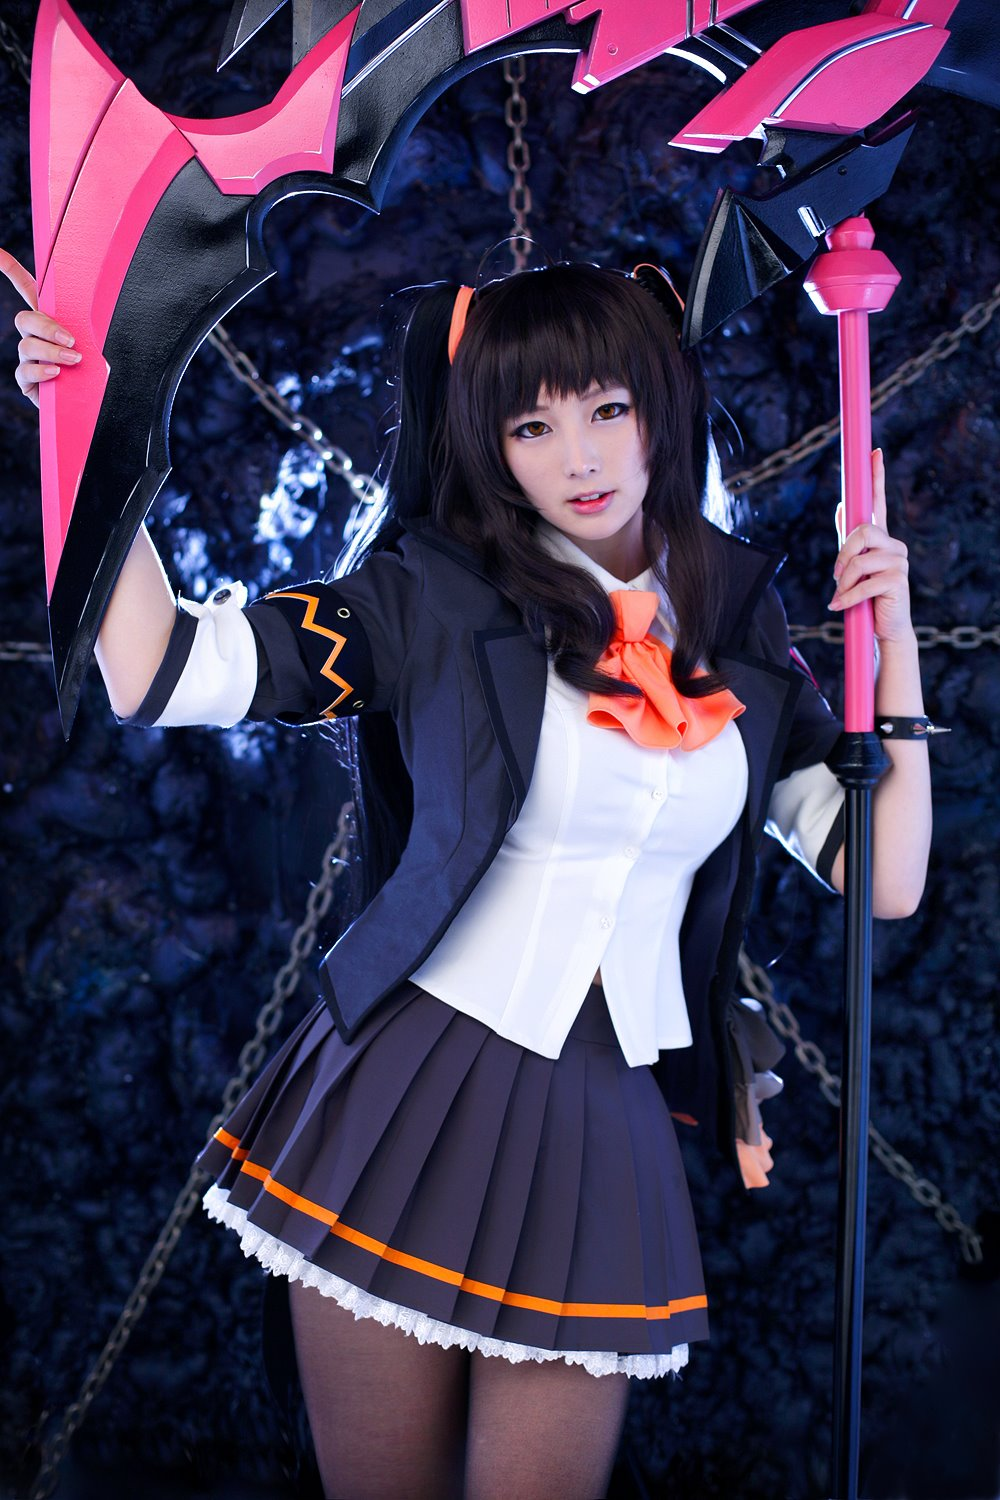 SoulWorker Myst Scythe Lily Bloommerchen cosplay 8